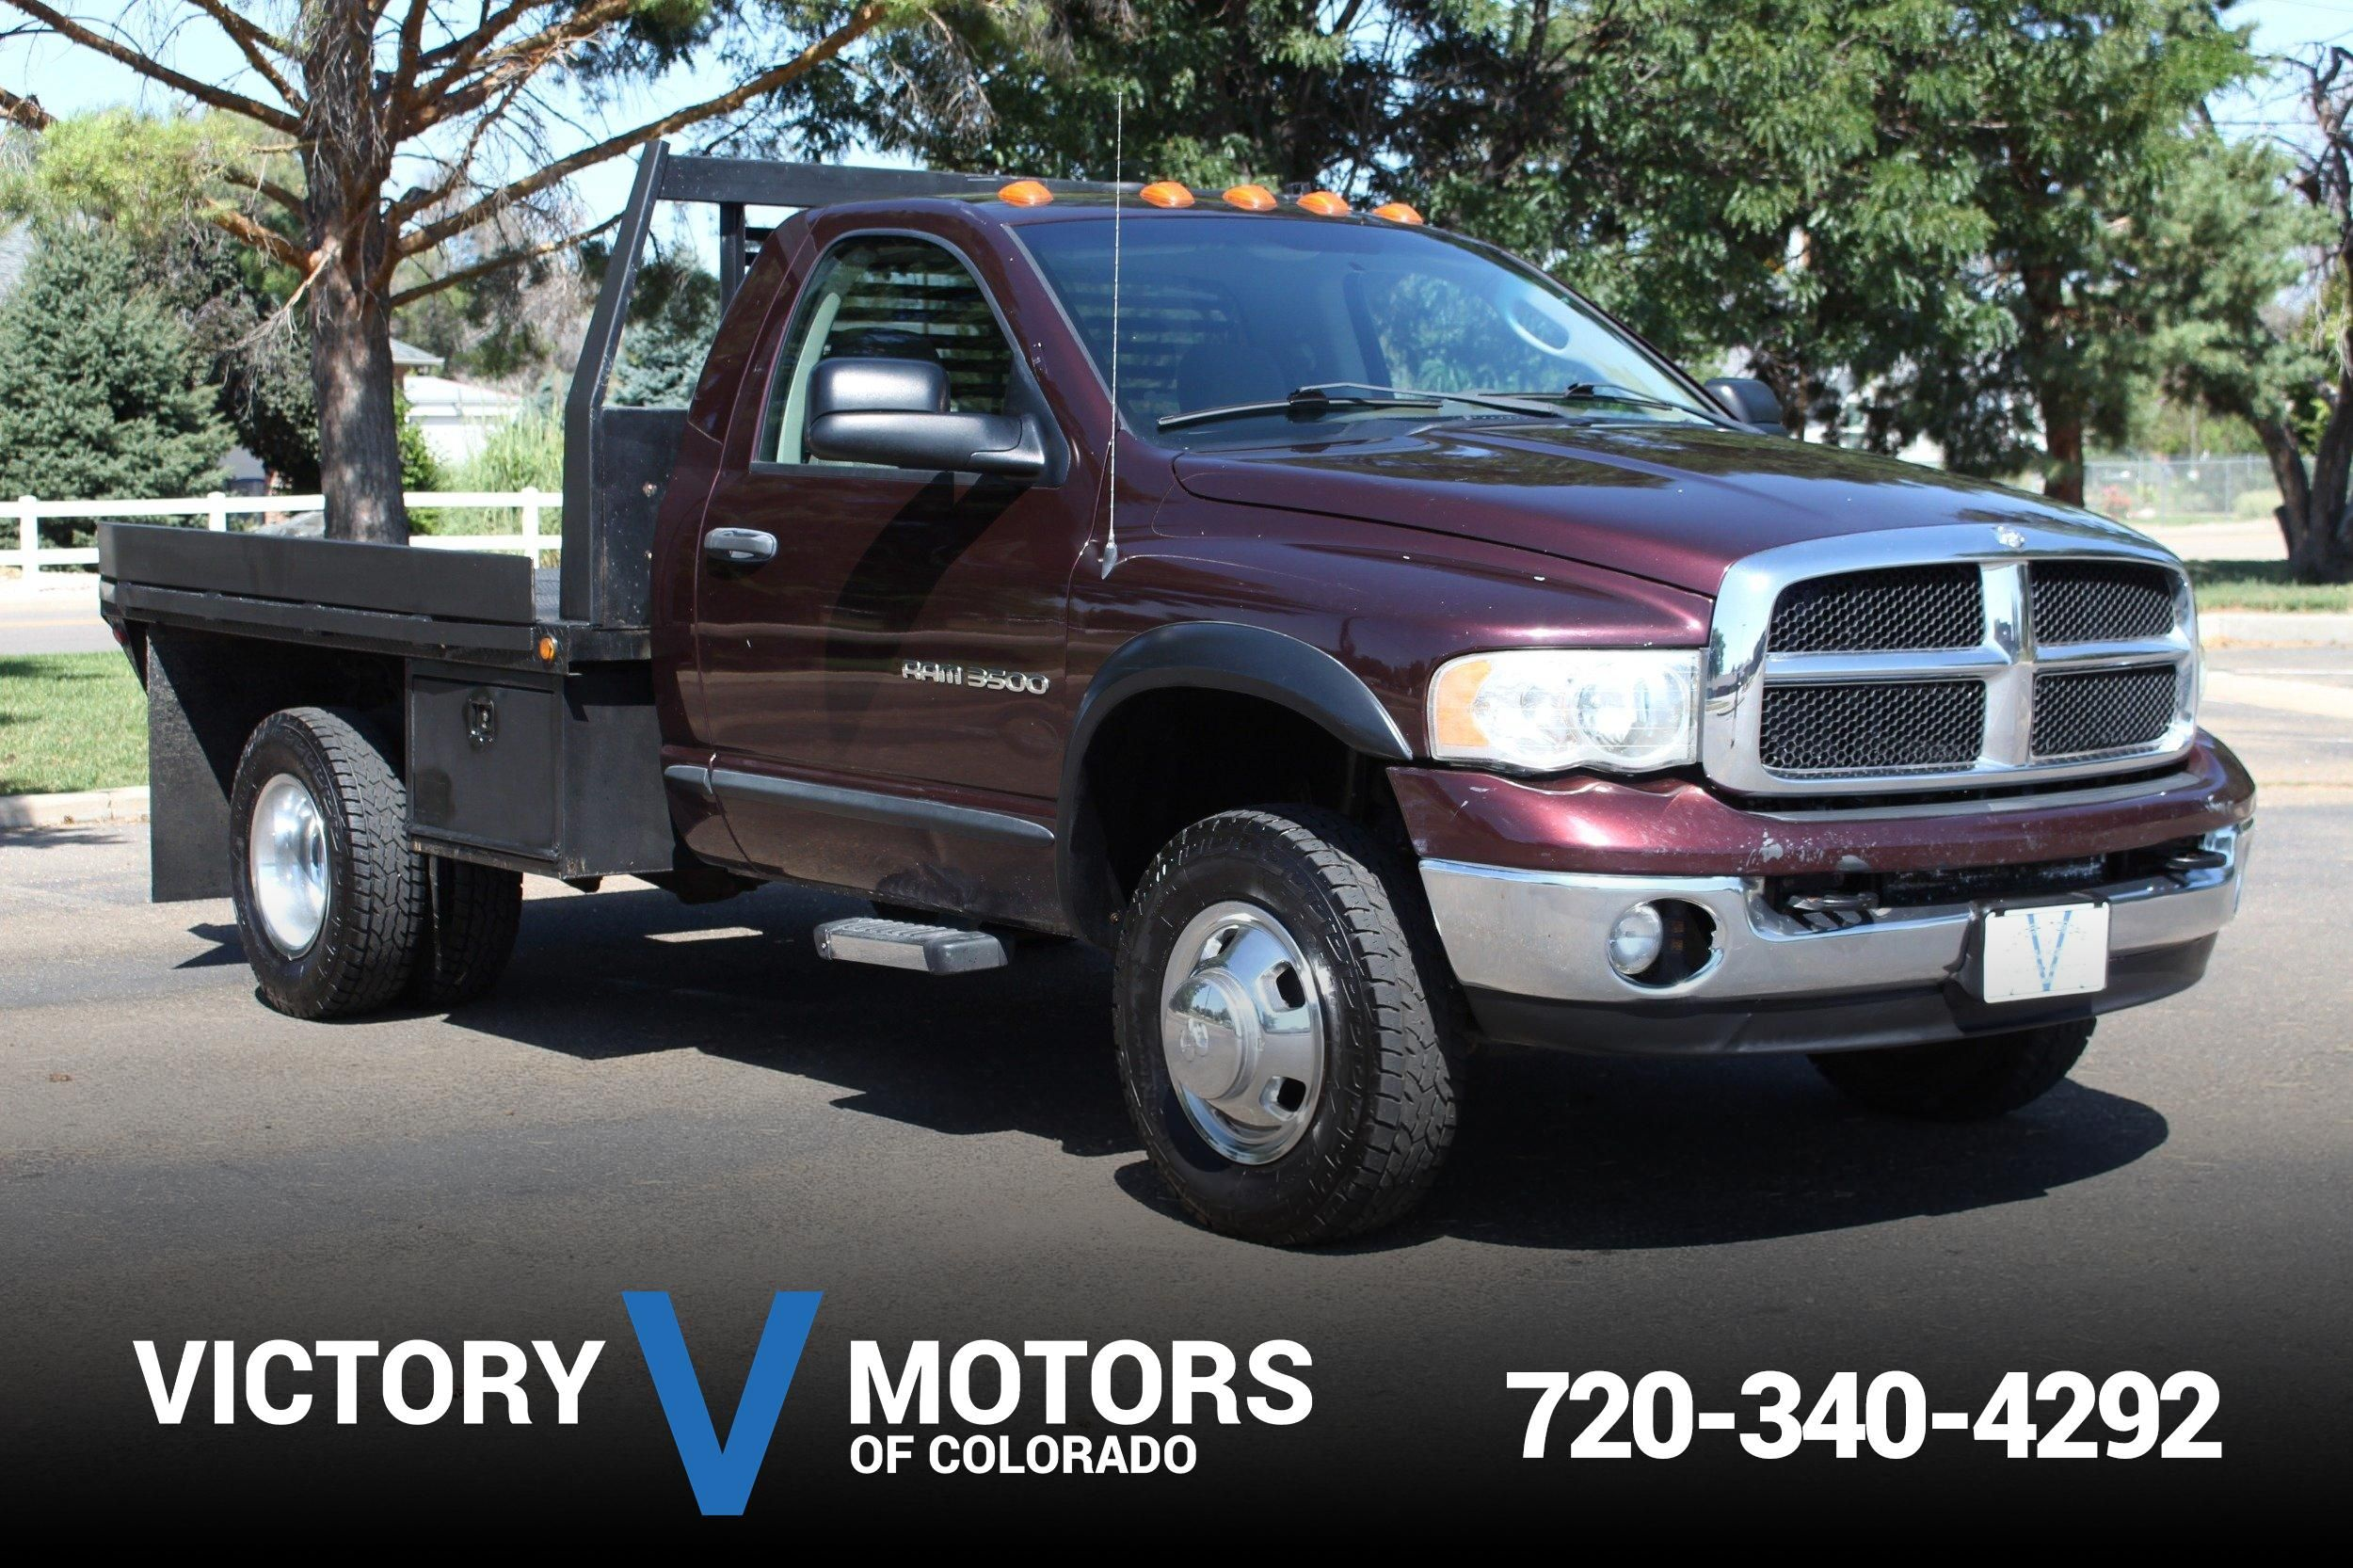 2004 Dodge Ram 3500 Slt Victory Motors Of Colorado